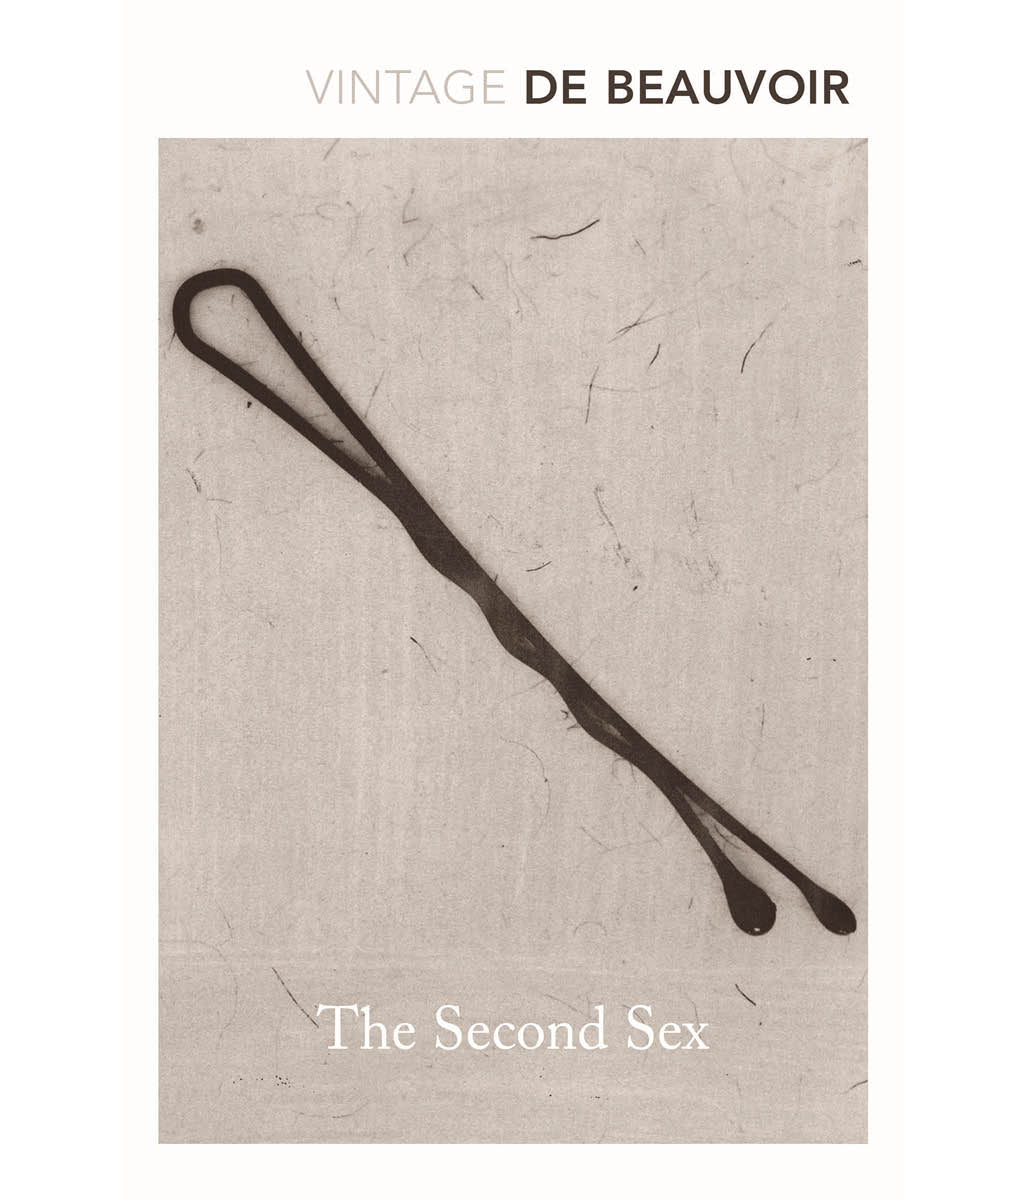 The second sex by Simone de Beuvour